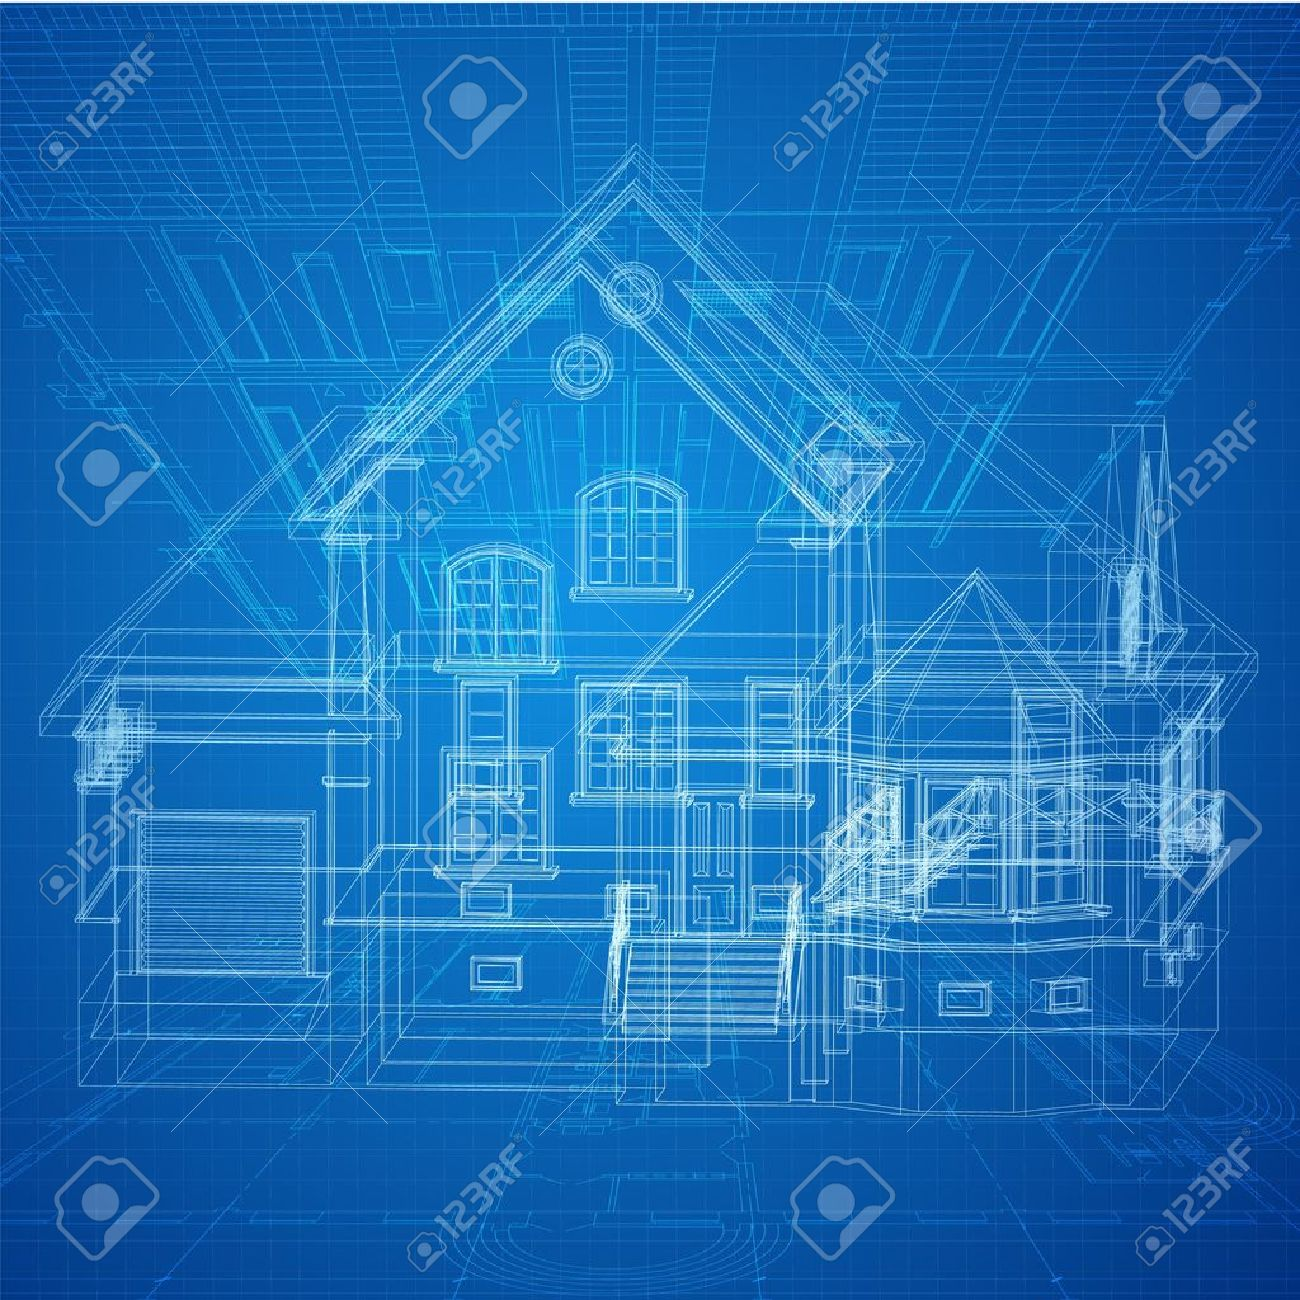 blueprint house images stock pictures royalty free blueprint blueprint house architectural background with a 3d building model